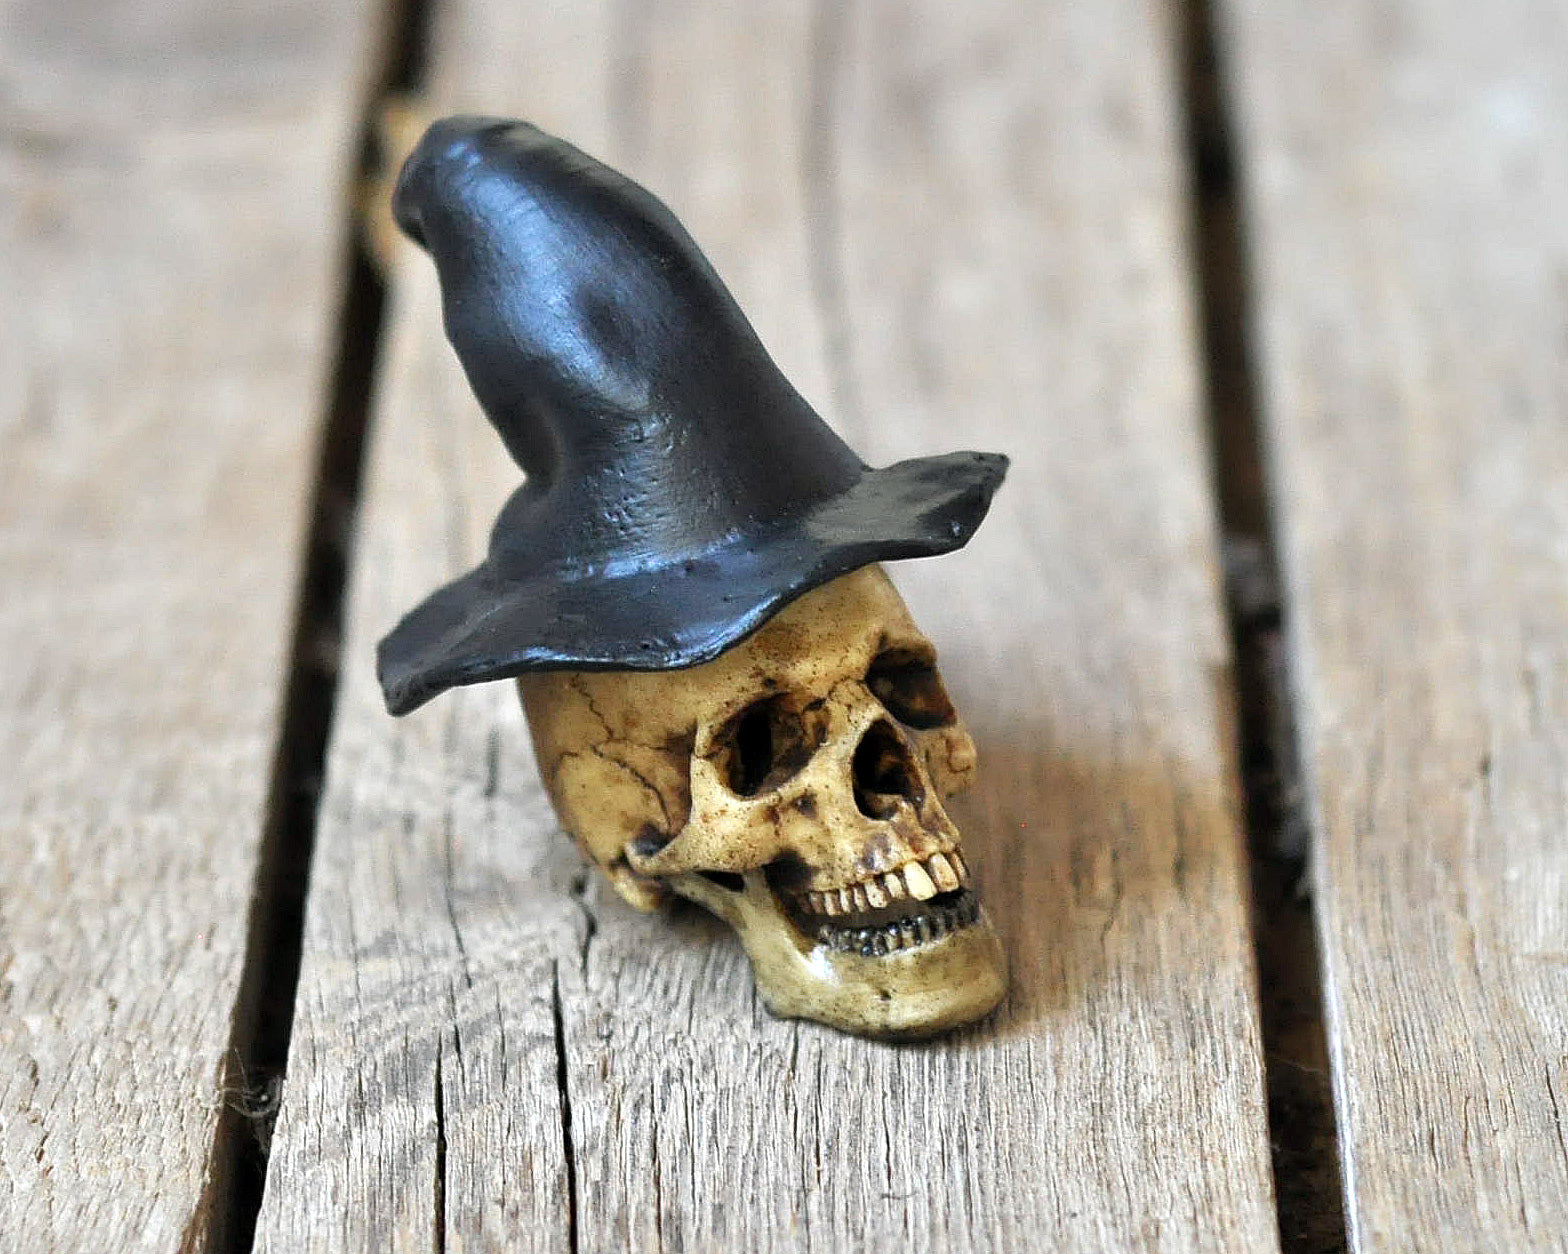 Realistic High detailed Decorative Human Skull, Decorative Witch Human Skull Miniature, Skull Art, Gothic Style Decorative Skull Sculpture